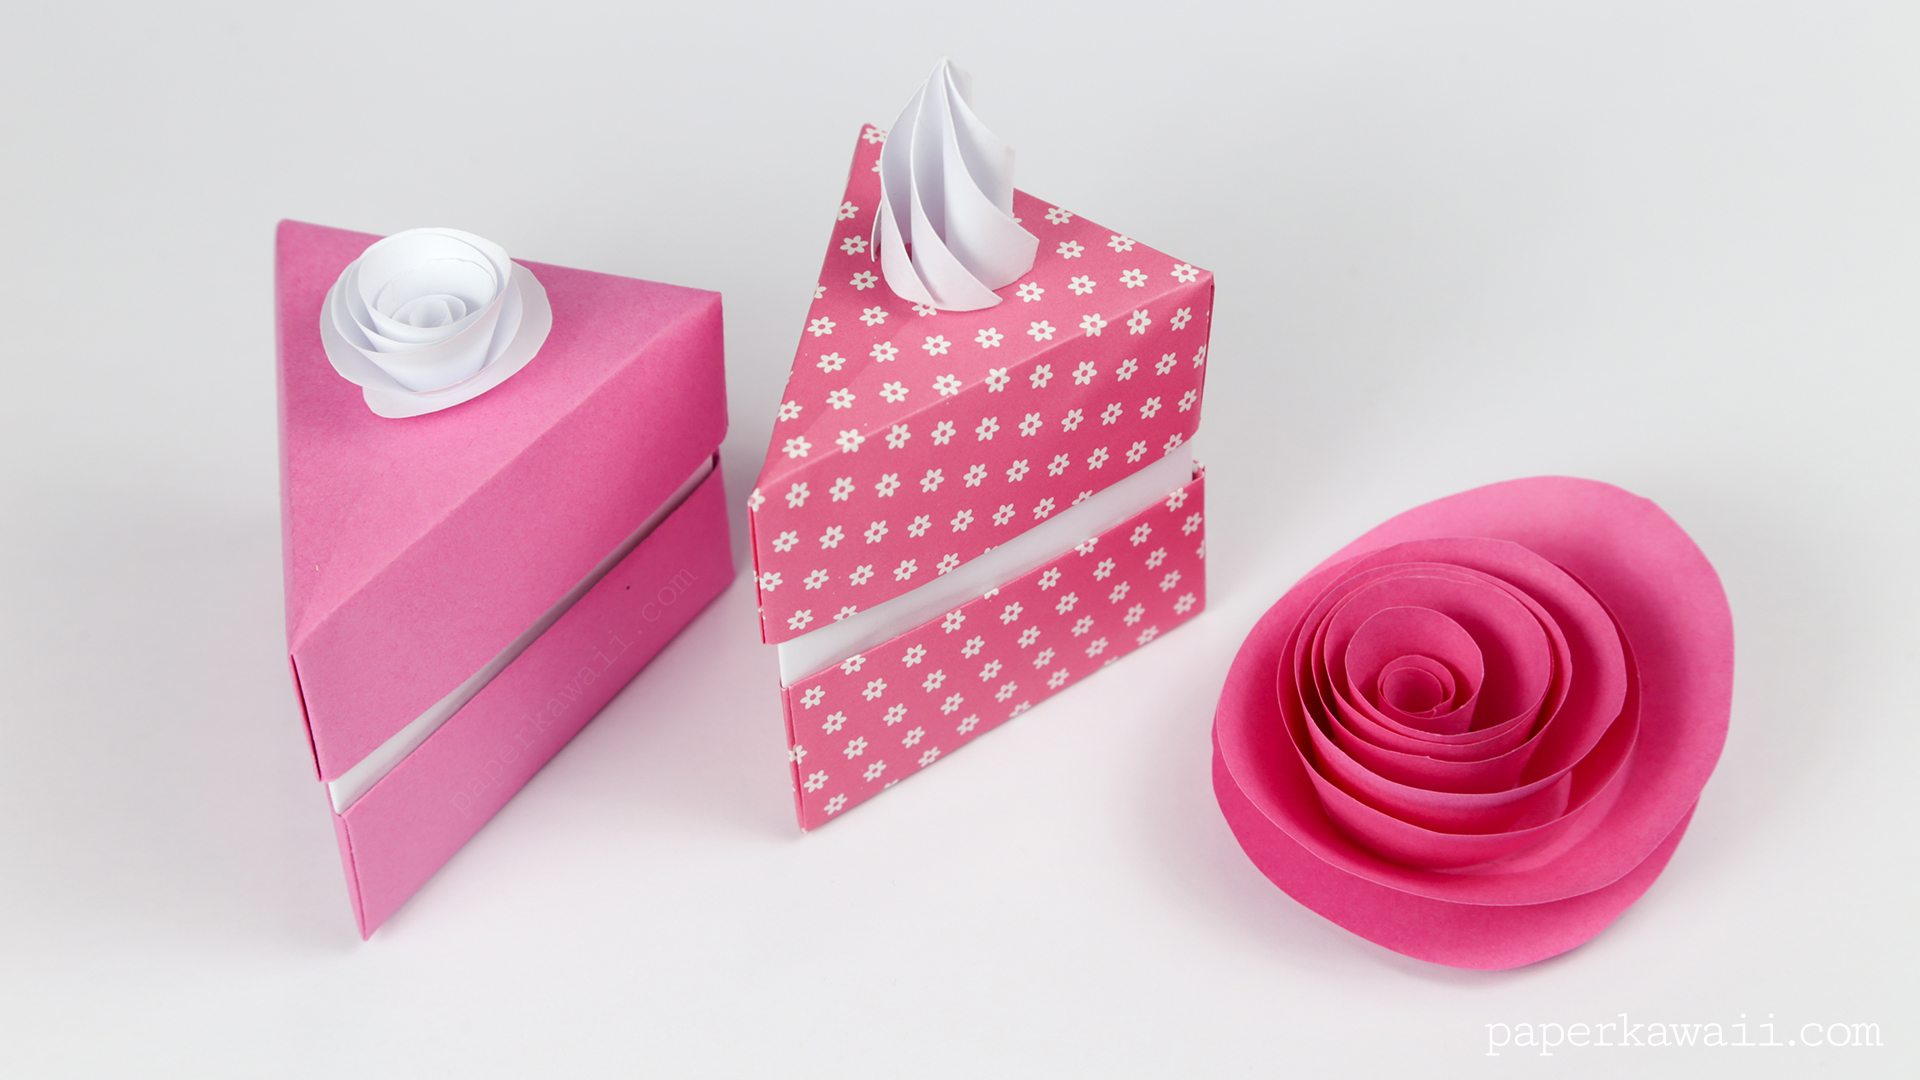 Origami Cake Slice Box Instructions The Kawaii Ice Cream And Cakes Paper Is Just Wrapping I Found Cut To Square